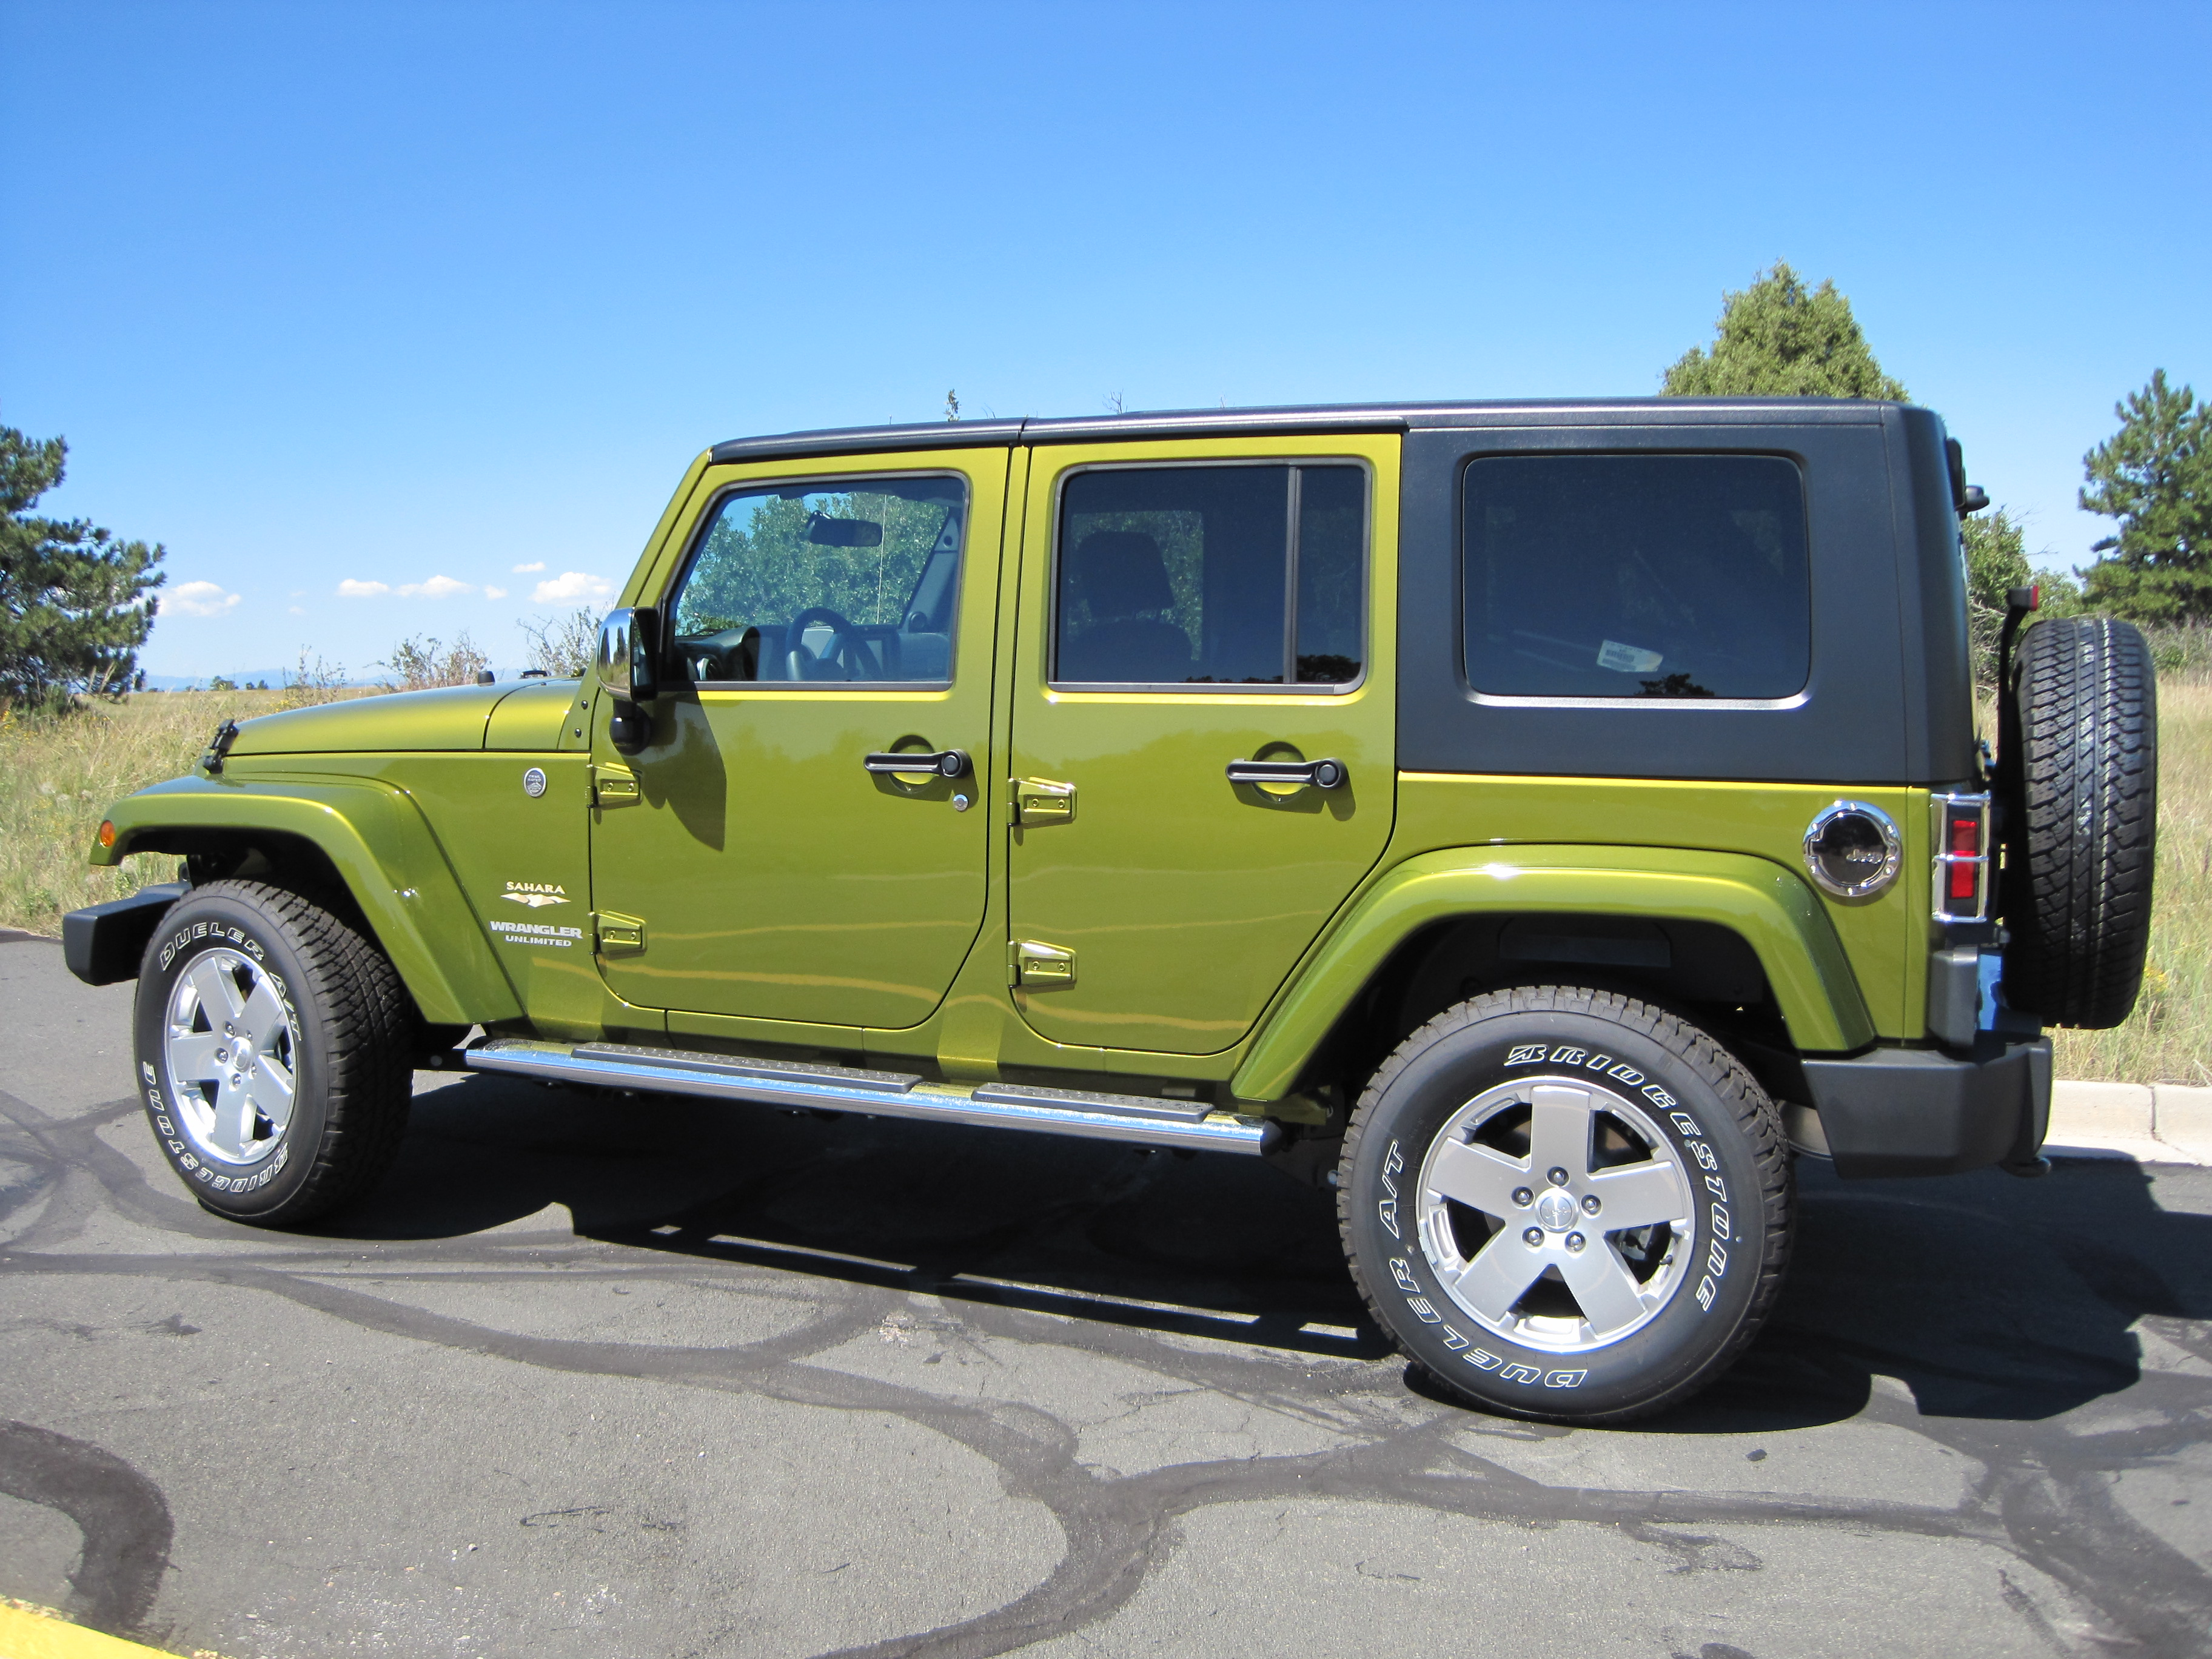 Perfect The 2010 Jeep Wrangler Unlimited Sahara Is A Blissful Retreat From The  Everyday Vehicle. I Have To Believe That At Some Point In Our Lives  Everyone Wants To ...